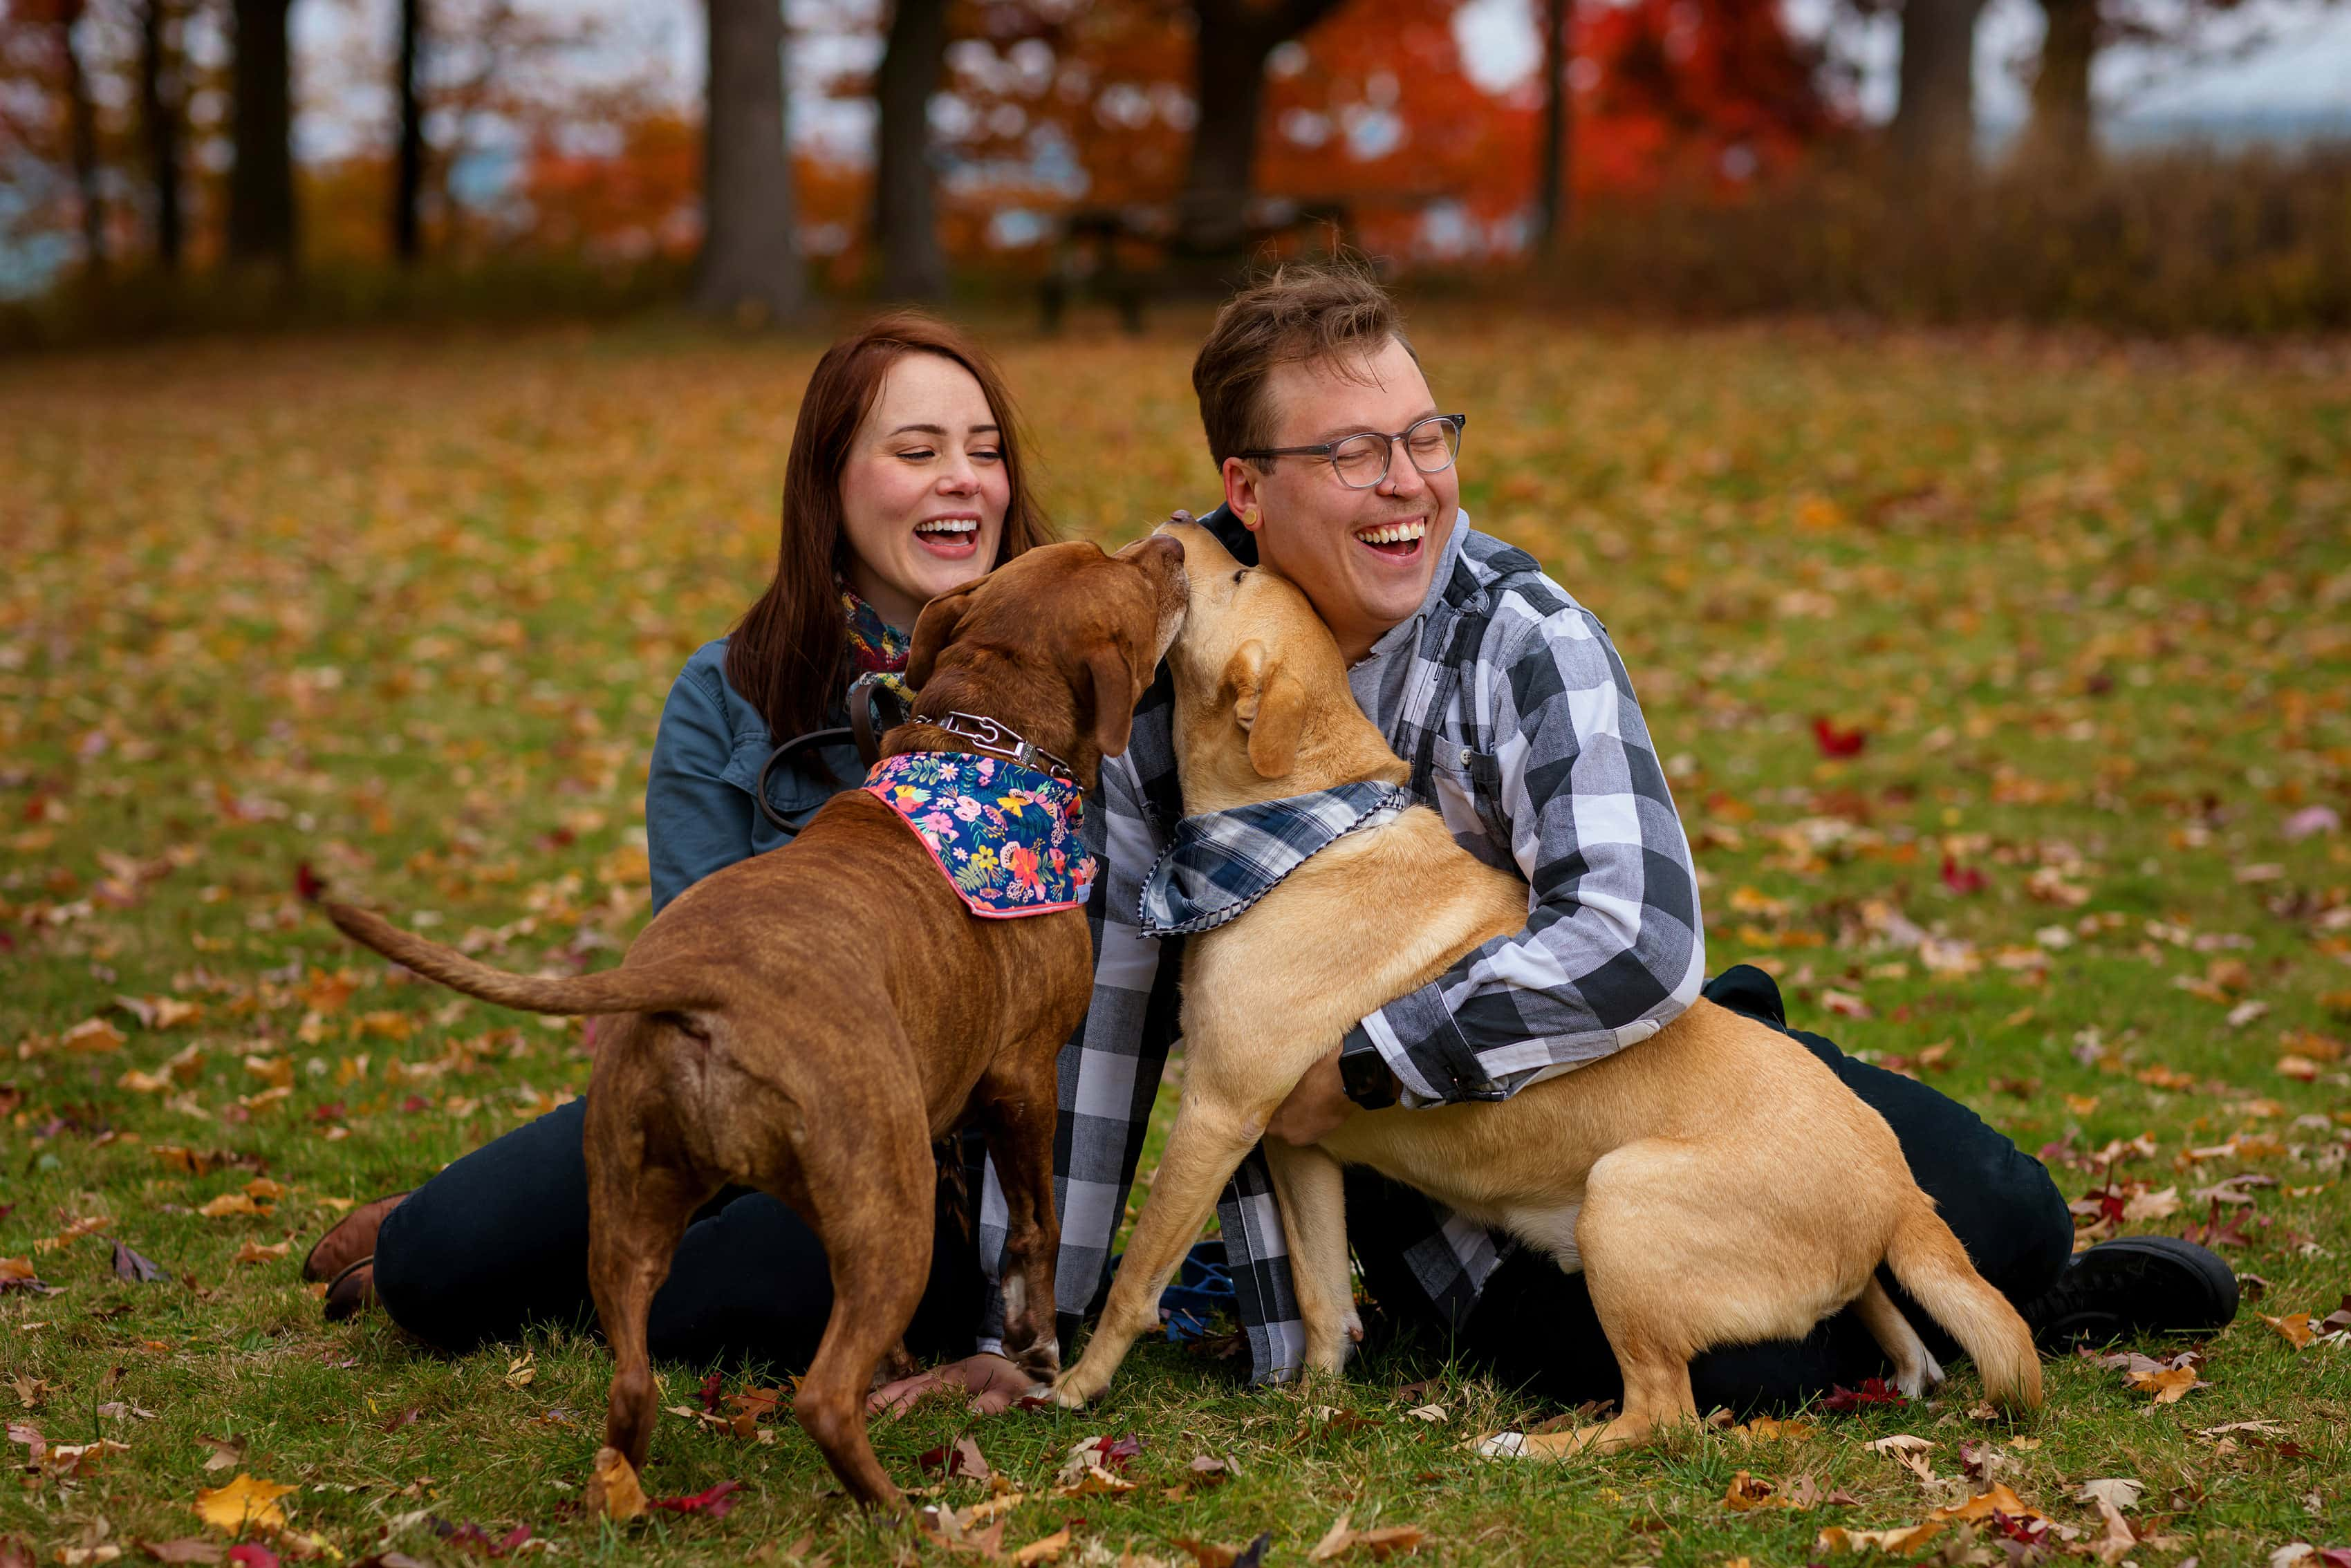 couple plays with their dogs with colorful trees in the background during engagement session at Rosewood Park in Highland Park, Illinois